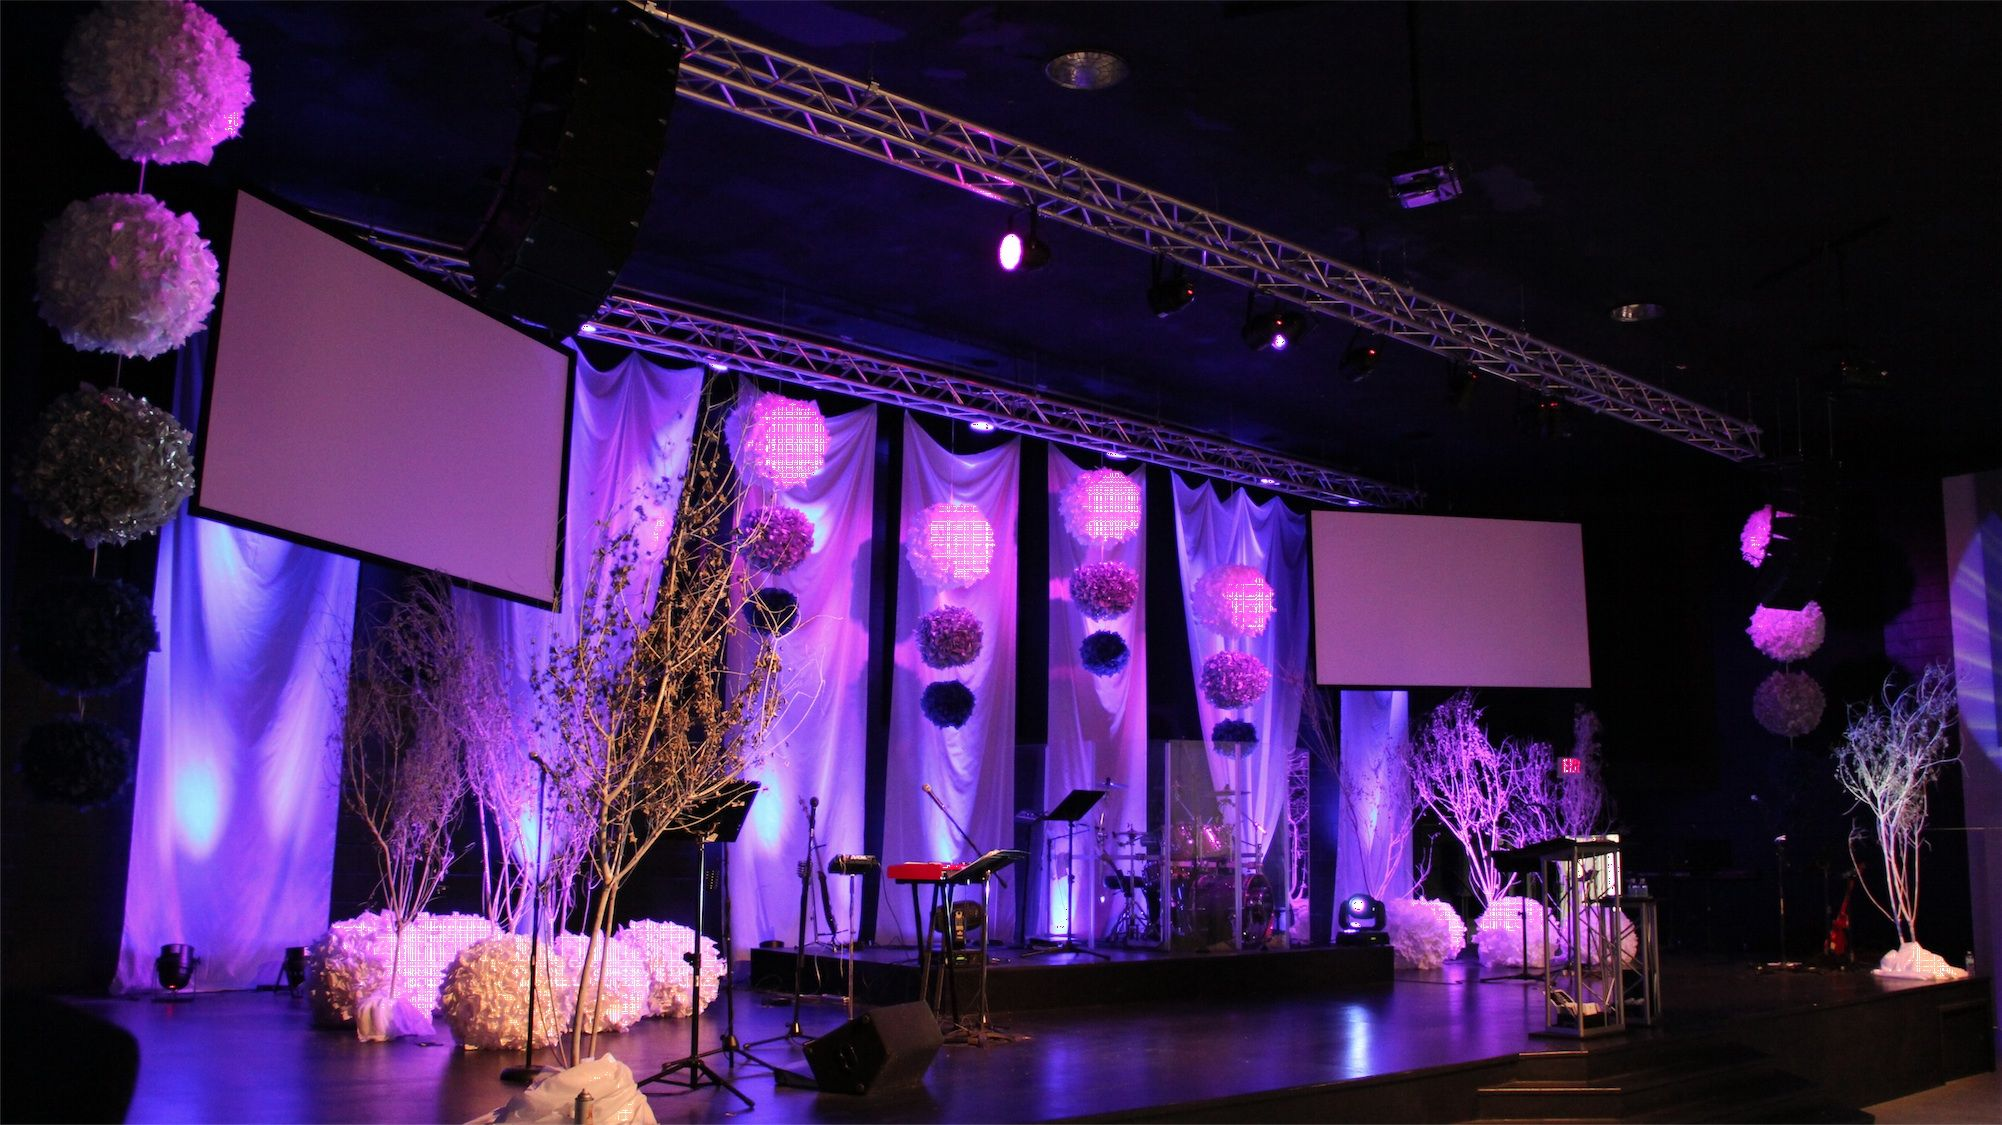 Joey Riggins From Lighthouse Church In Panama City Beach Fl Brings Us This Stage Design Incorporating Pimped Out Paper Lanter Church Stage Wedding Stage Design